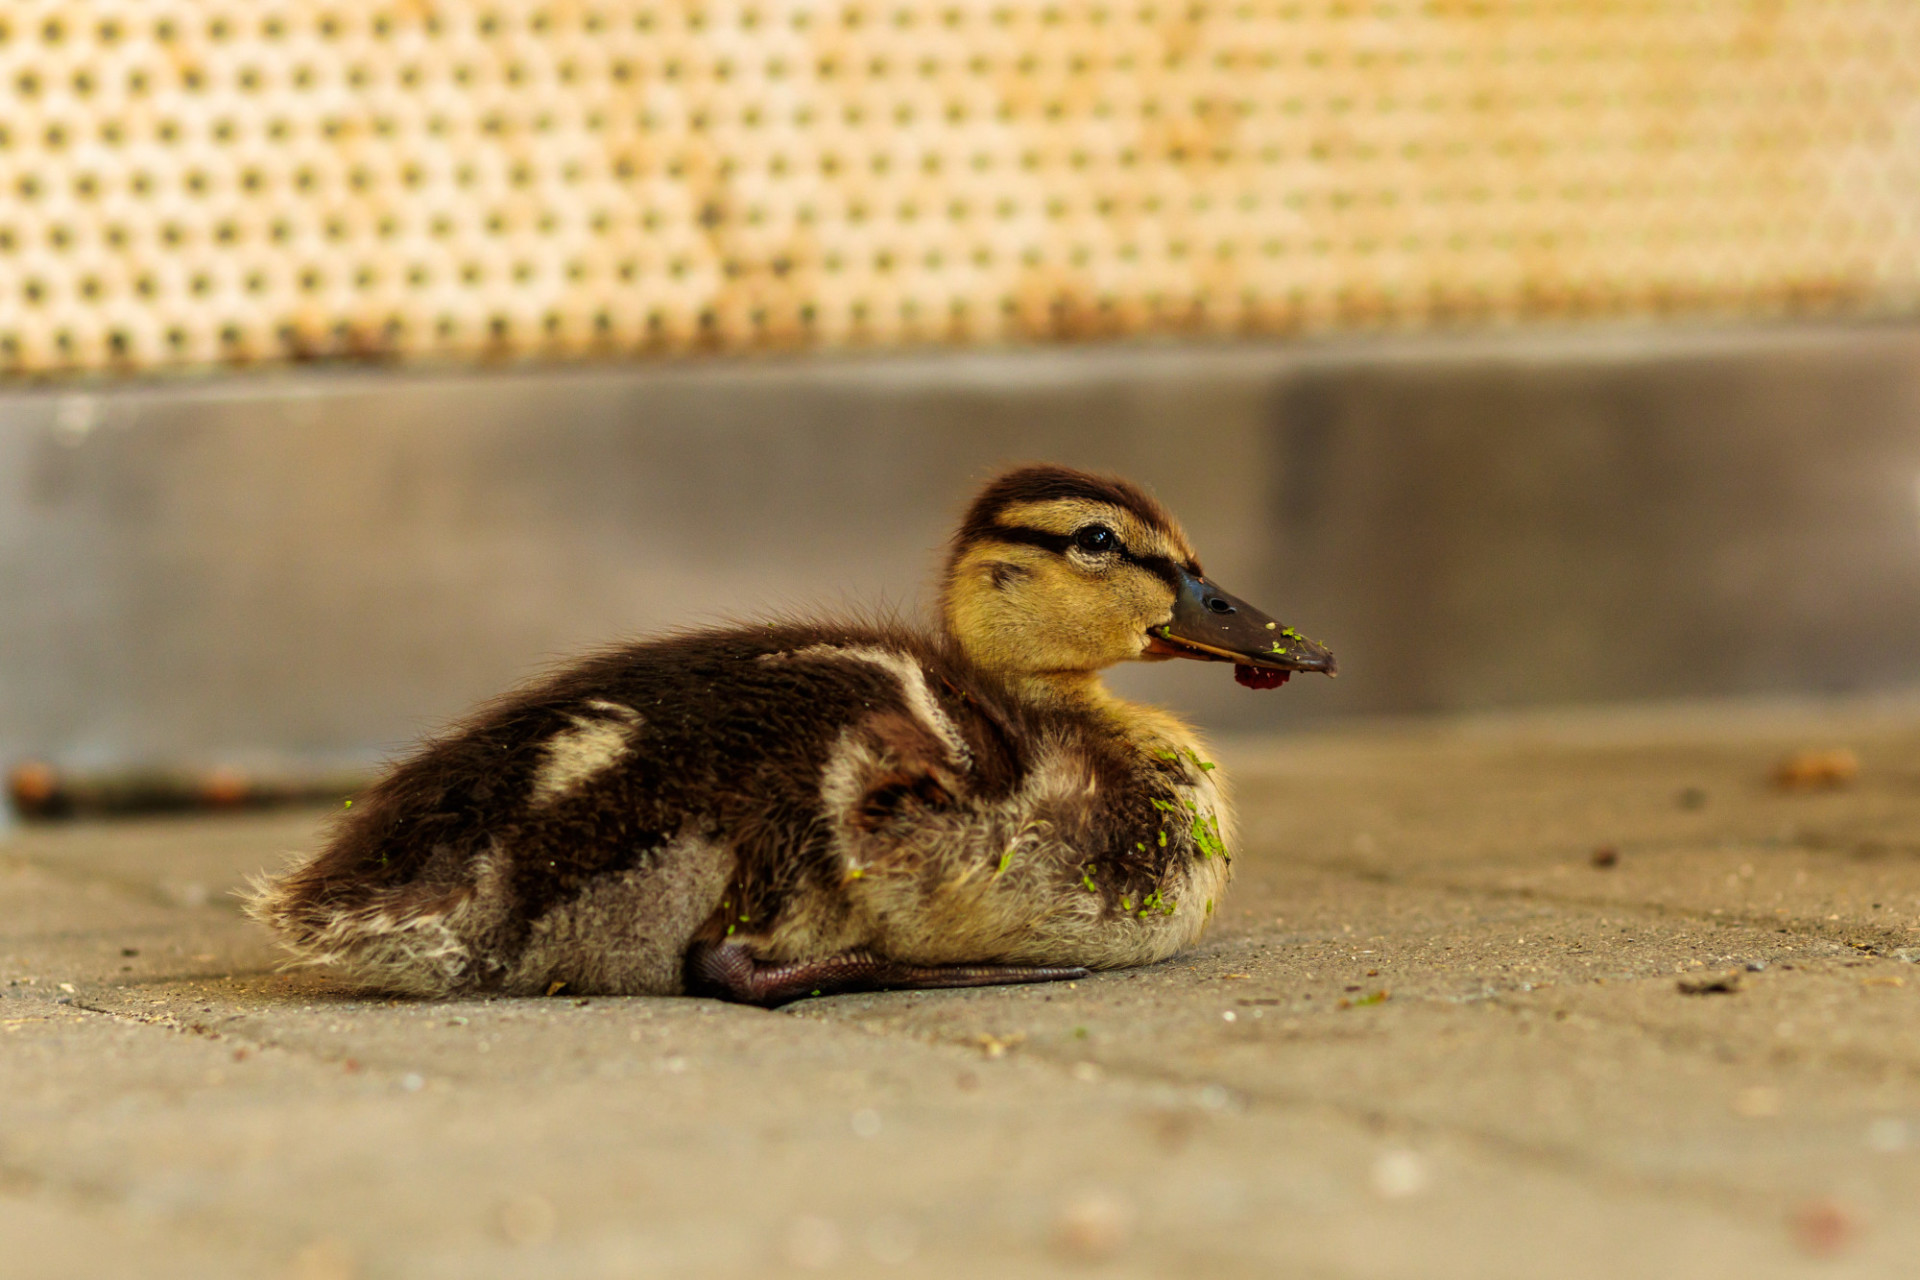 Duckling sitting in the street